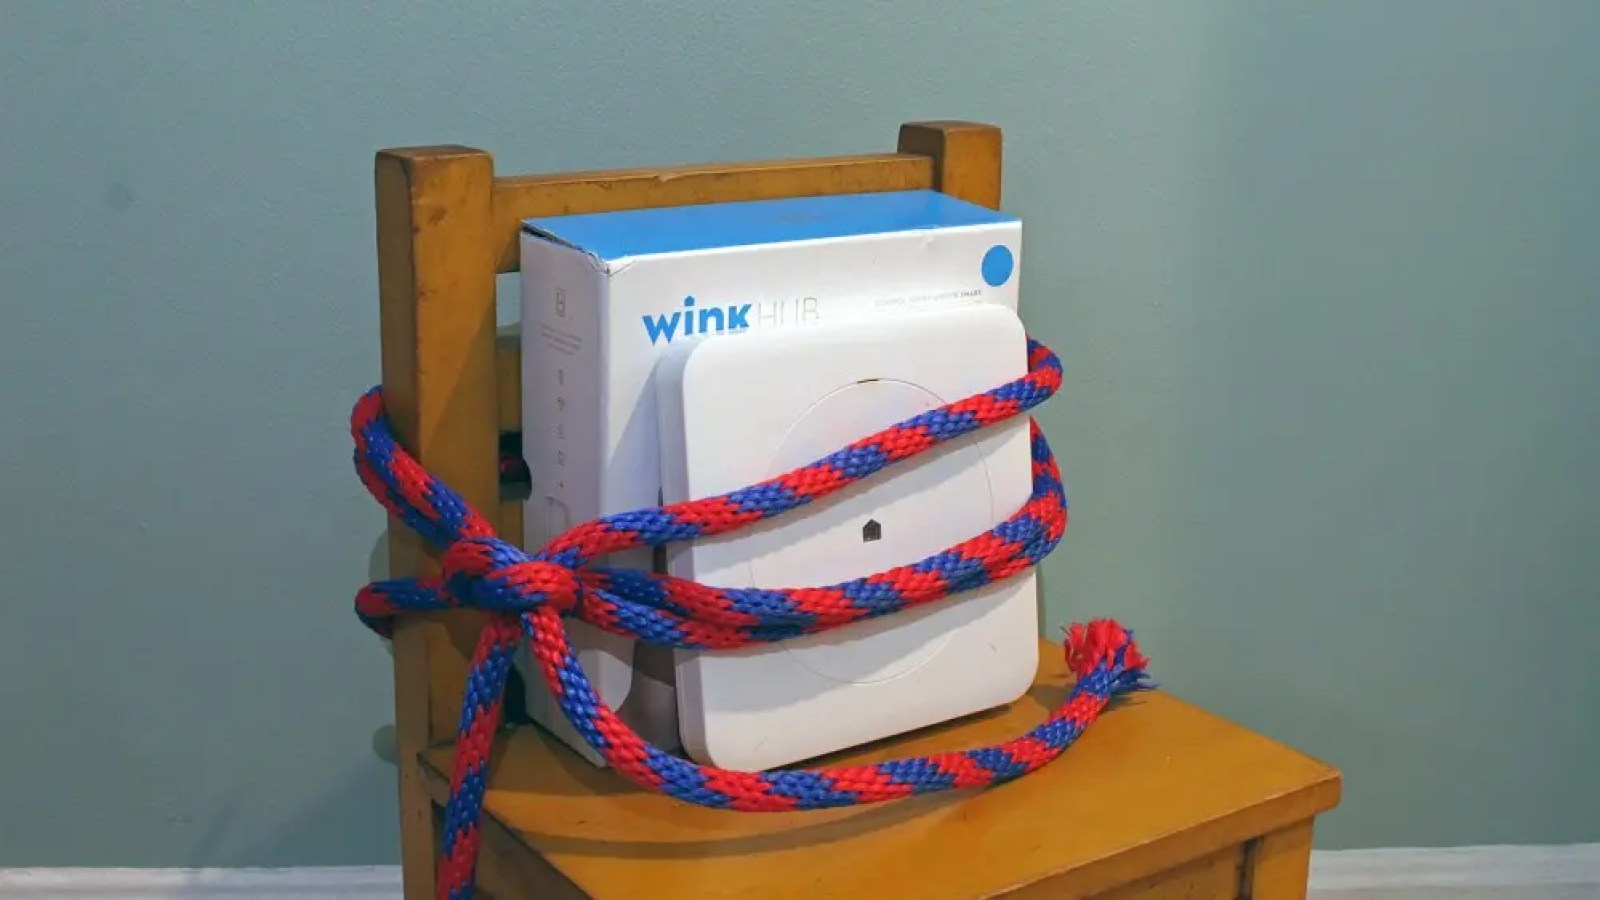 A Wink Hub tied up to a chair.